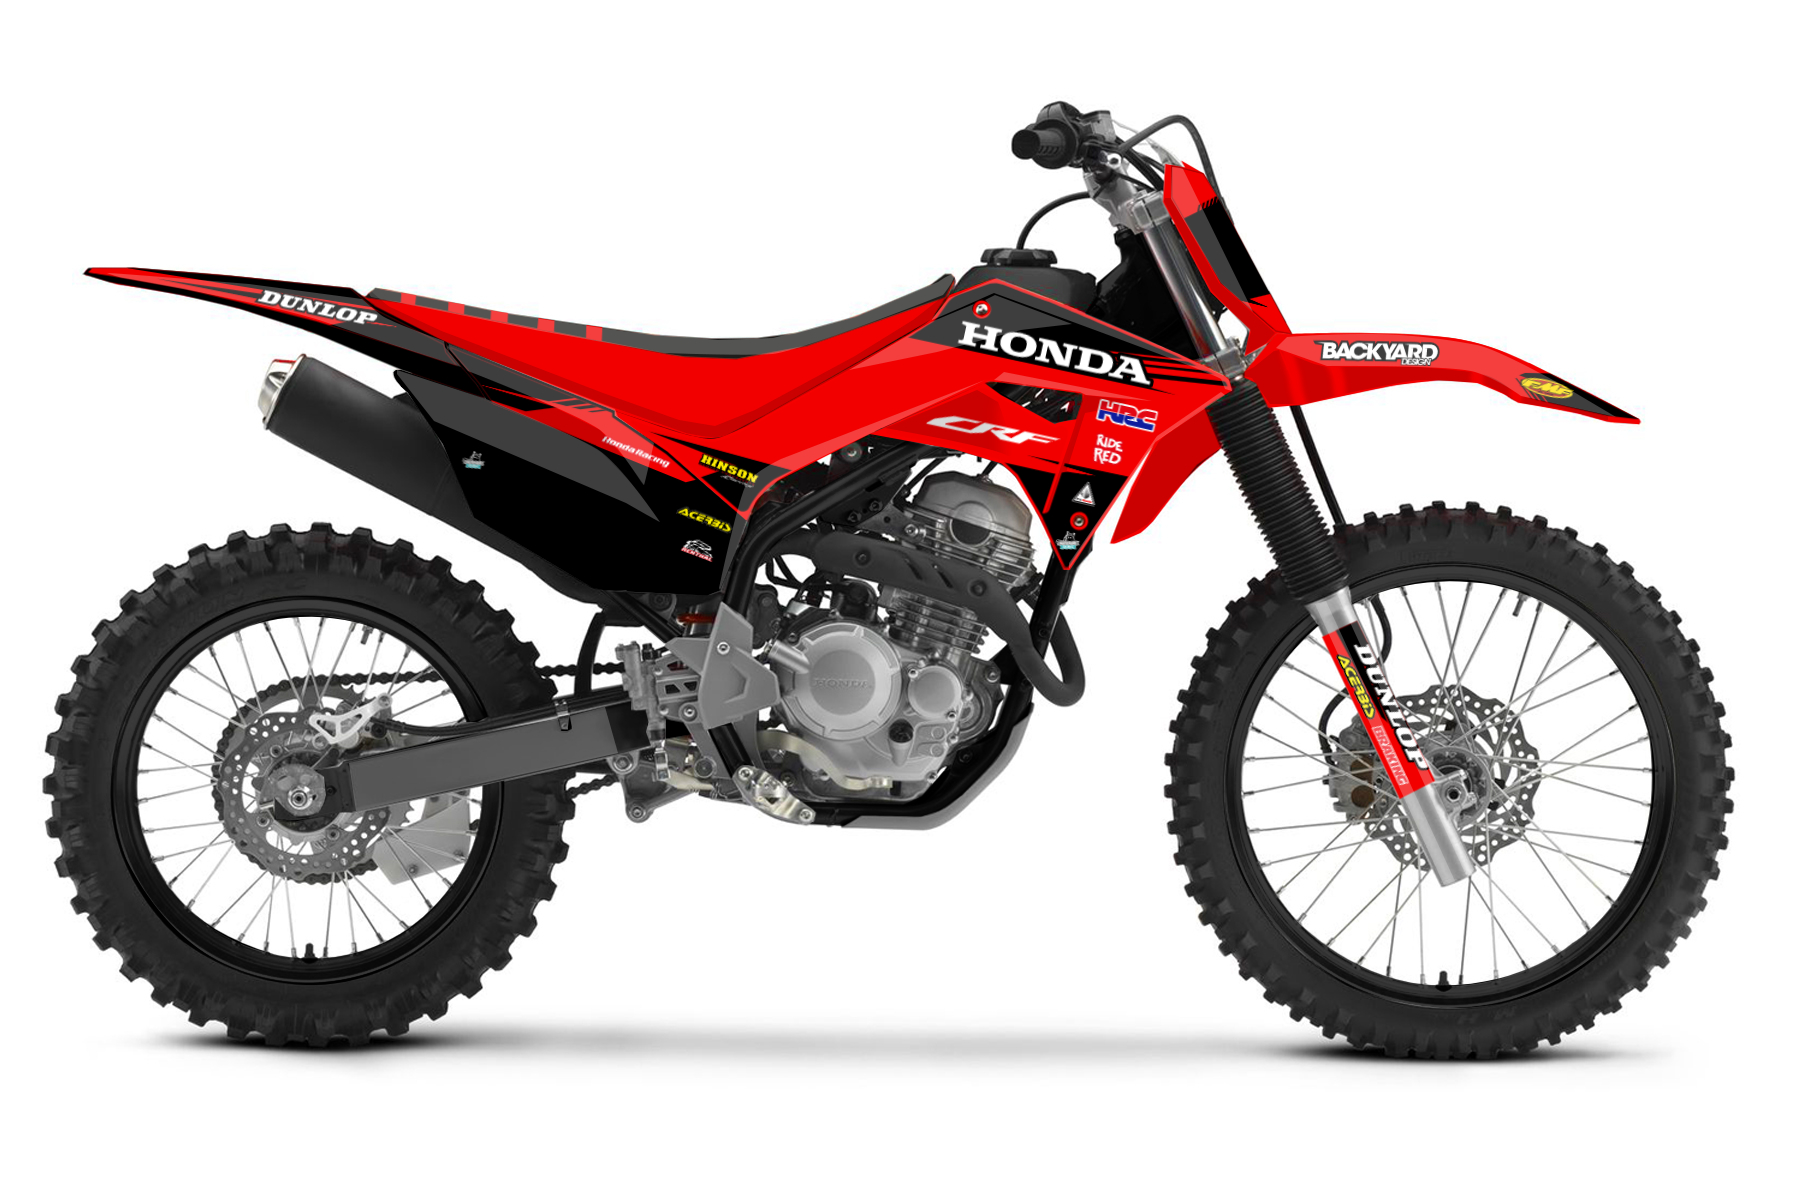 Honda CRF 125 MX Graphic Kits  The Honda CRF 125 is the perfect bike to gain confidence and a lot of practise on. You will love its good handling and sturdy build.